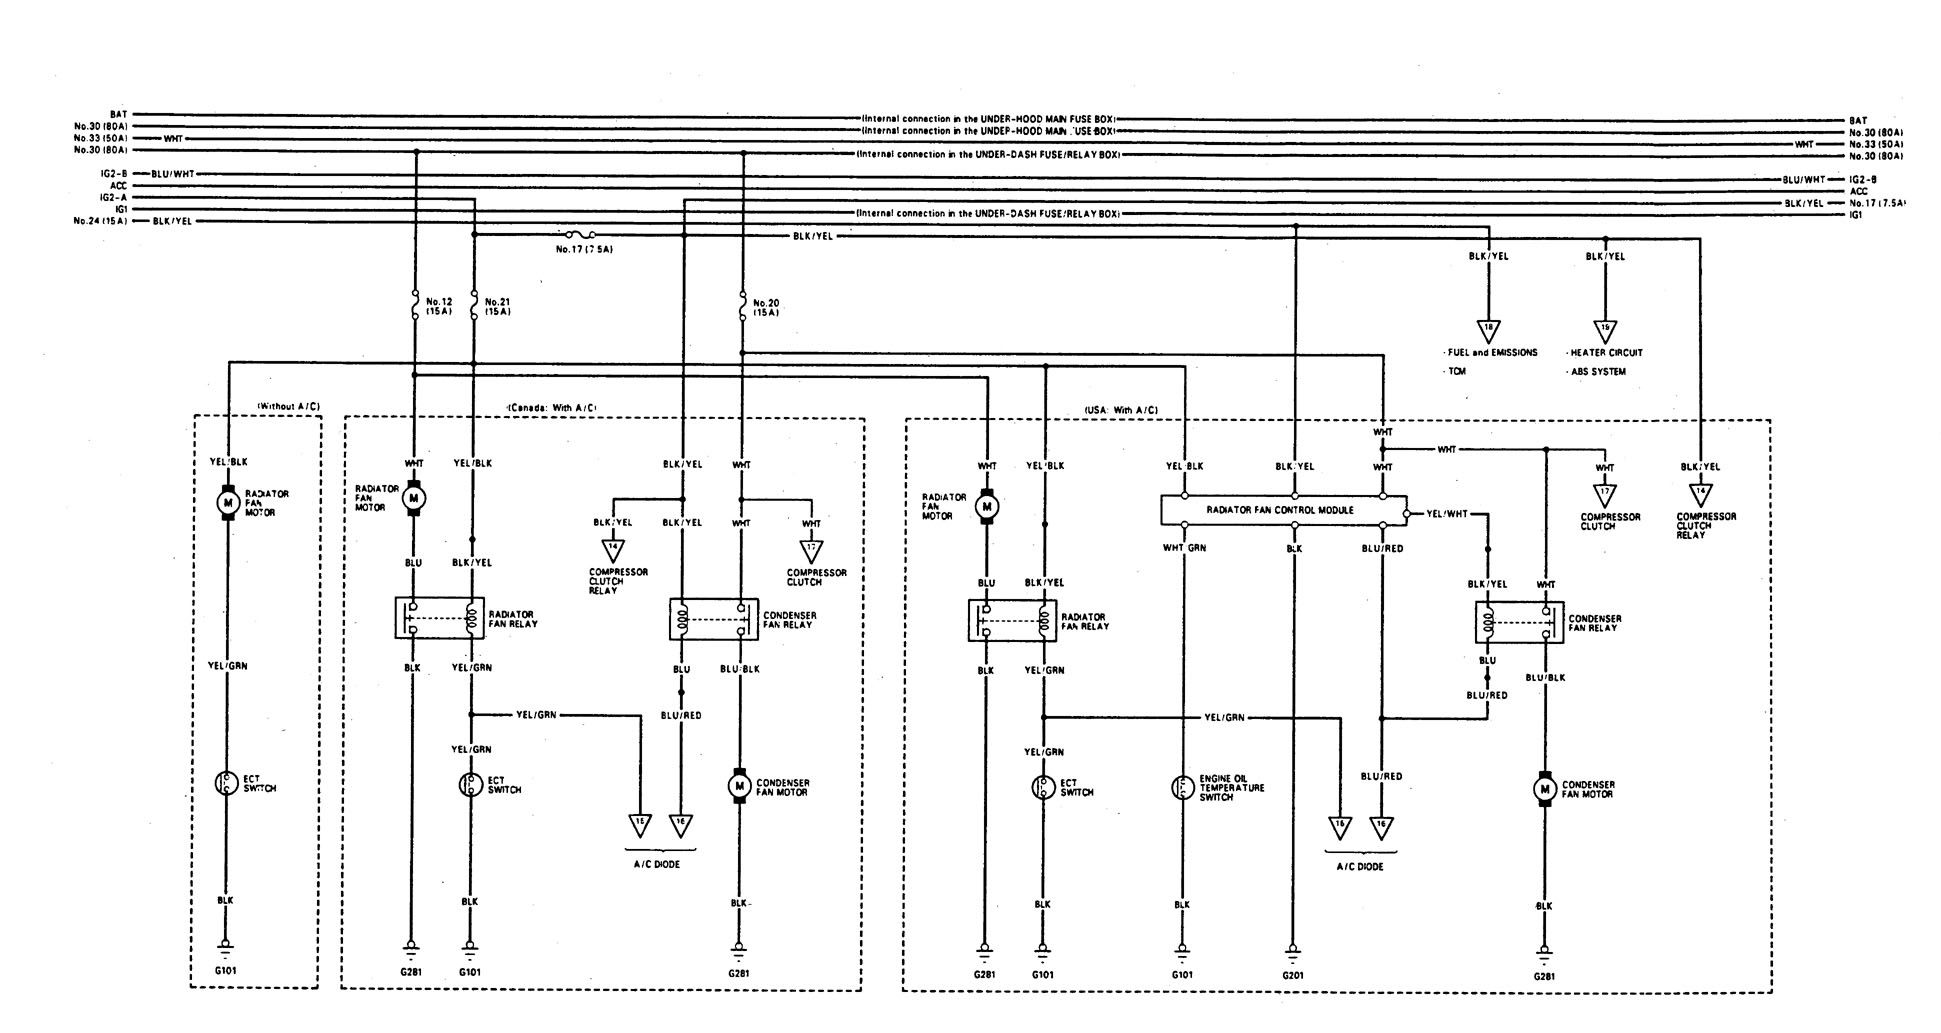 Apexi Safc Wiring Diagram For 1994 Acura Integra Ls Library Lincoln V6 Engine 93 Diagrams Automotive U2022 1997 Dodge Caravan B18a1